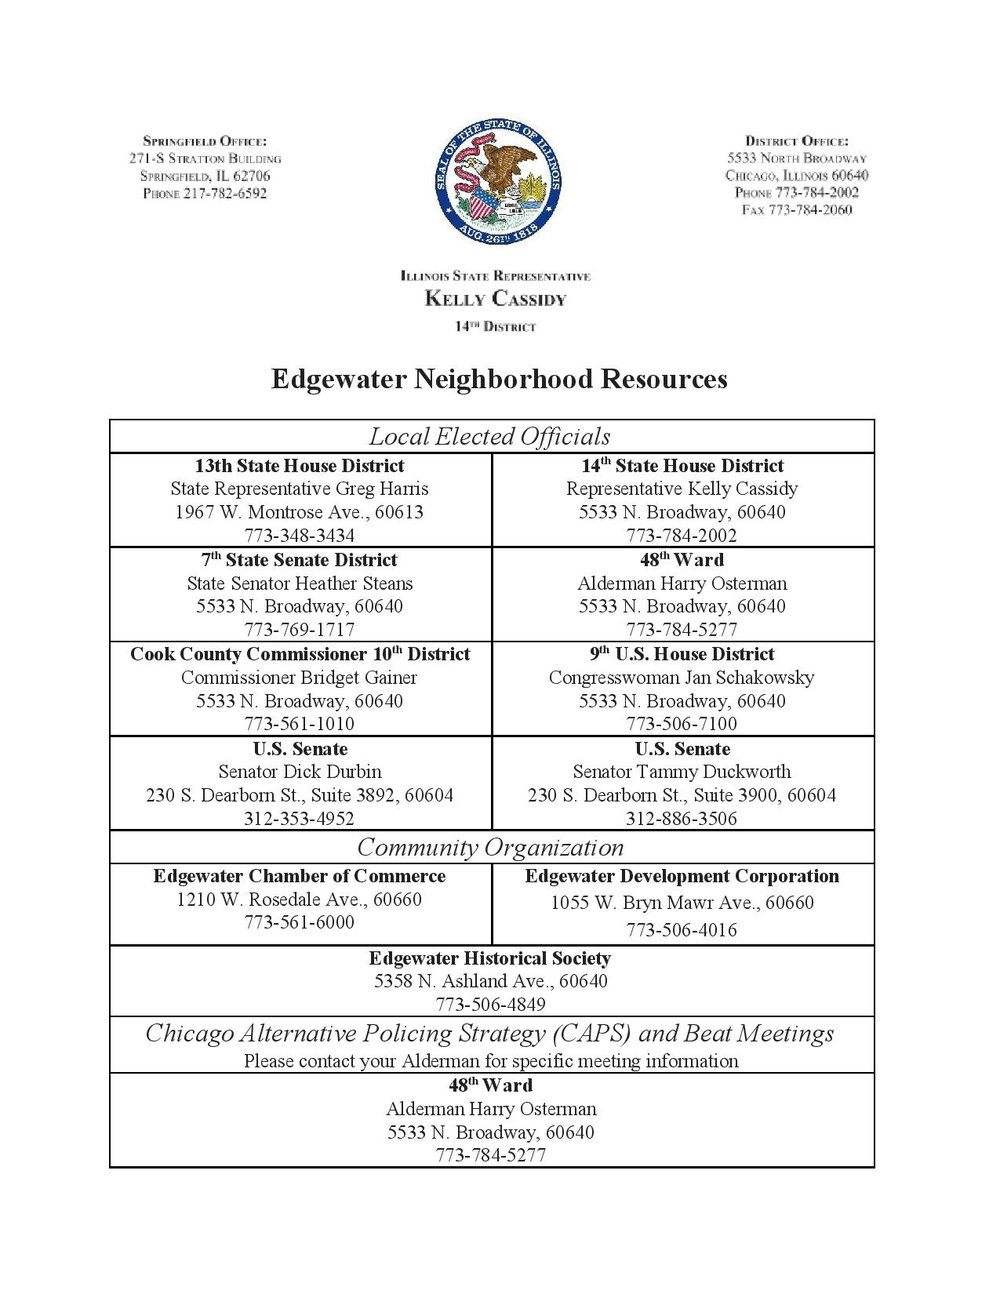 Edgewater Neighborhood Resources-page-001.jpg